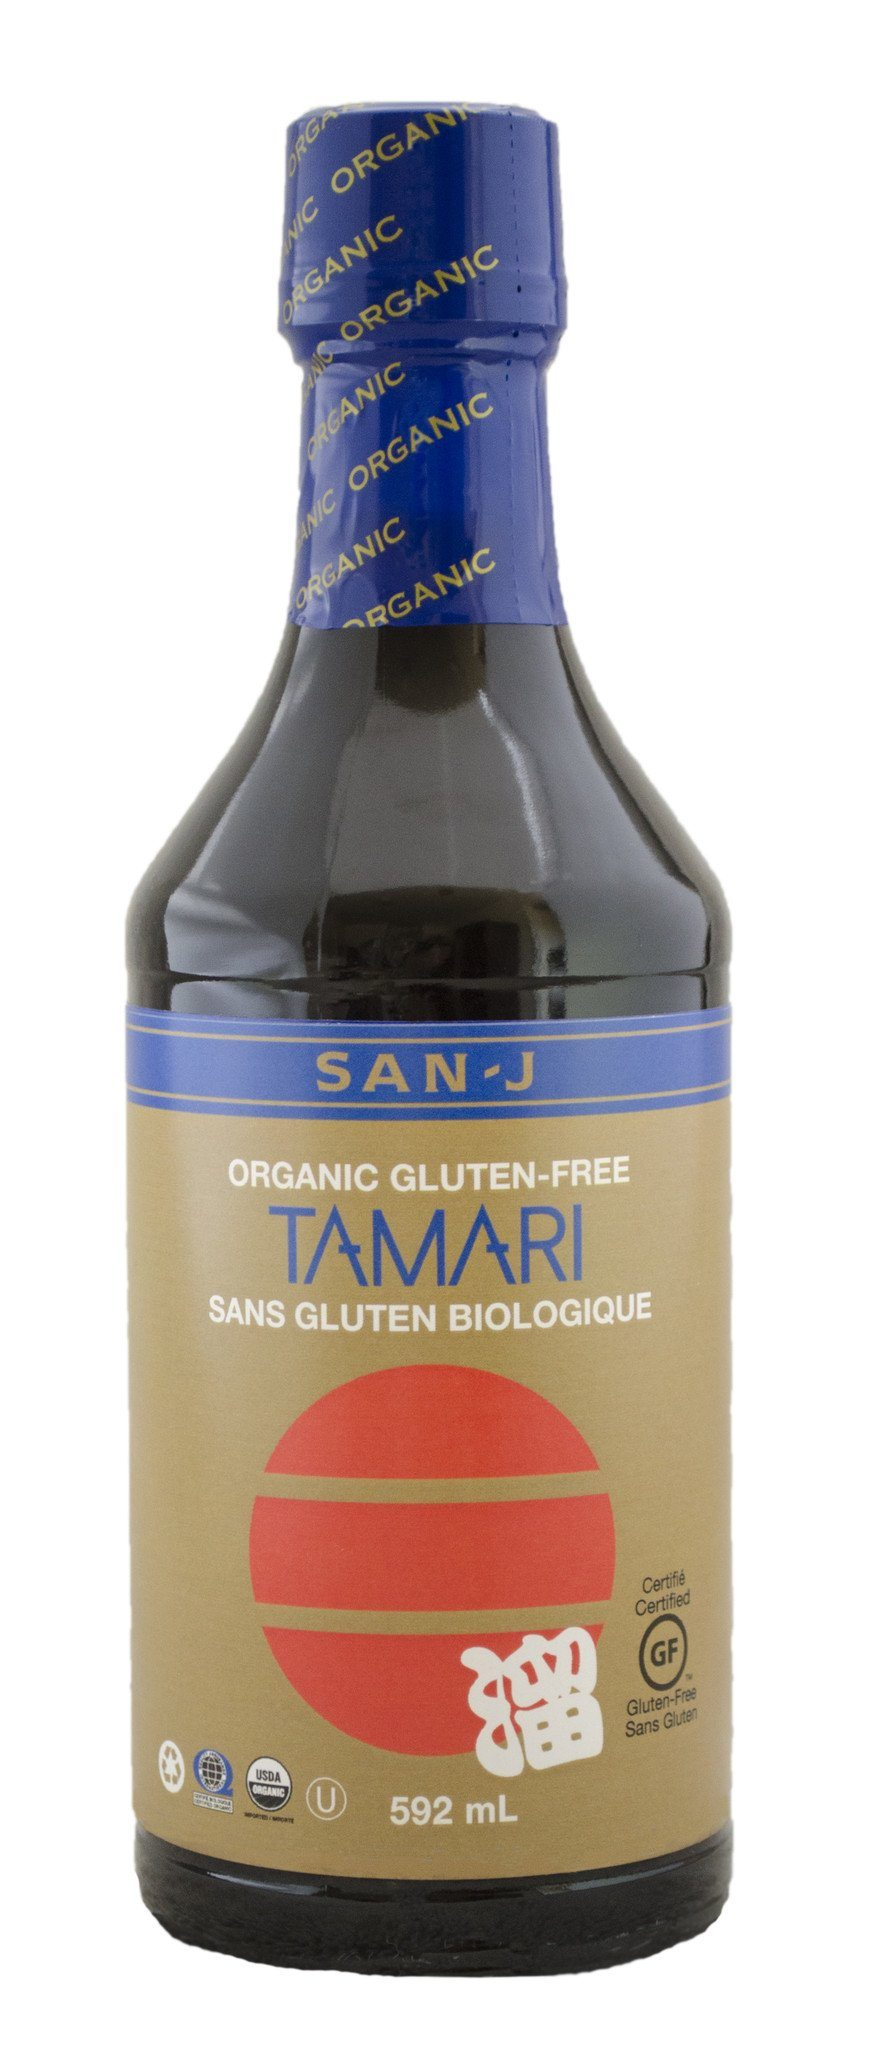 Food & Drink - San-J - Organic Tamari Soy Sauce, 592ml